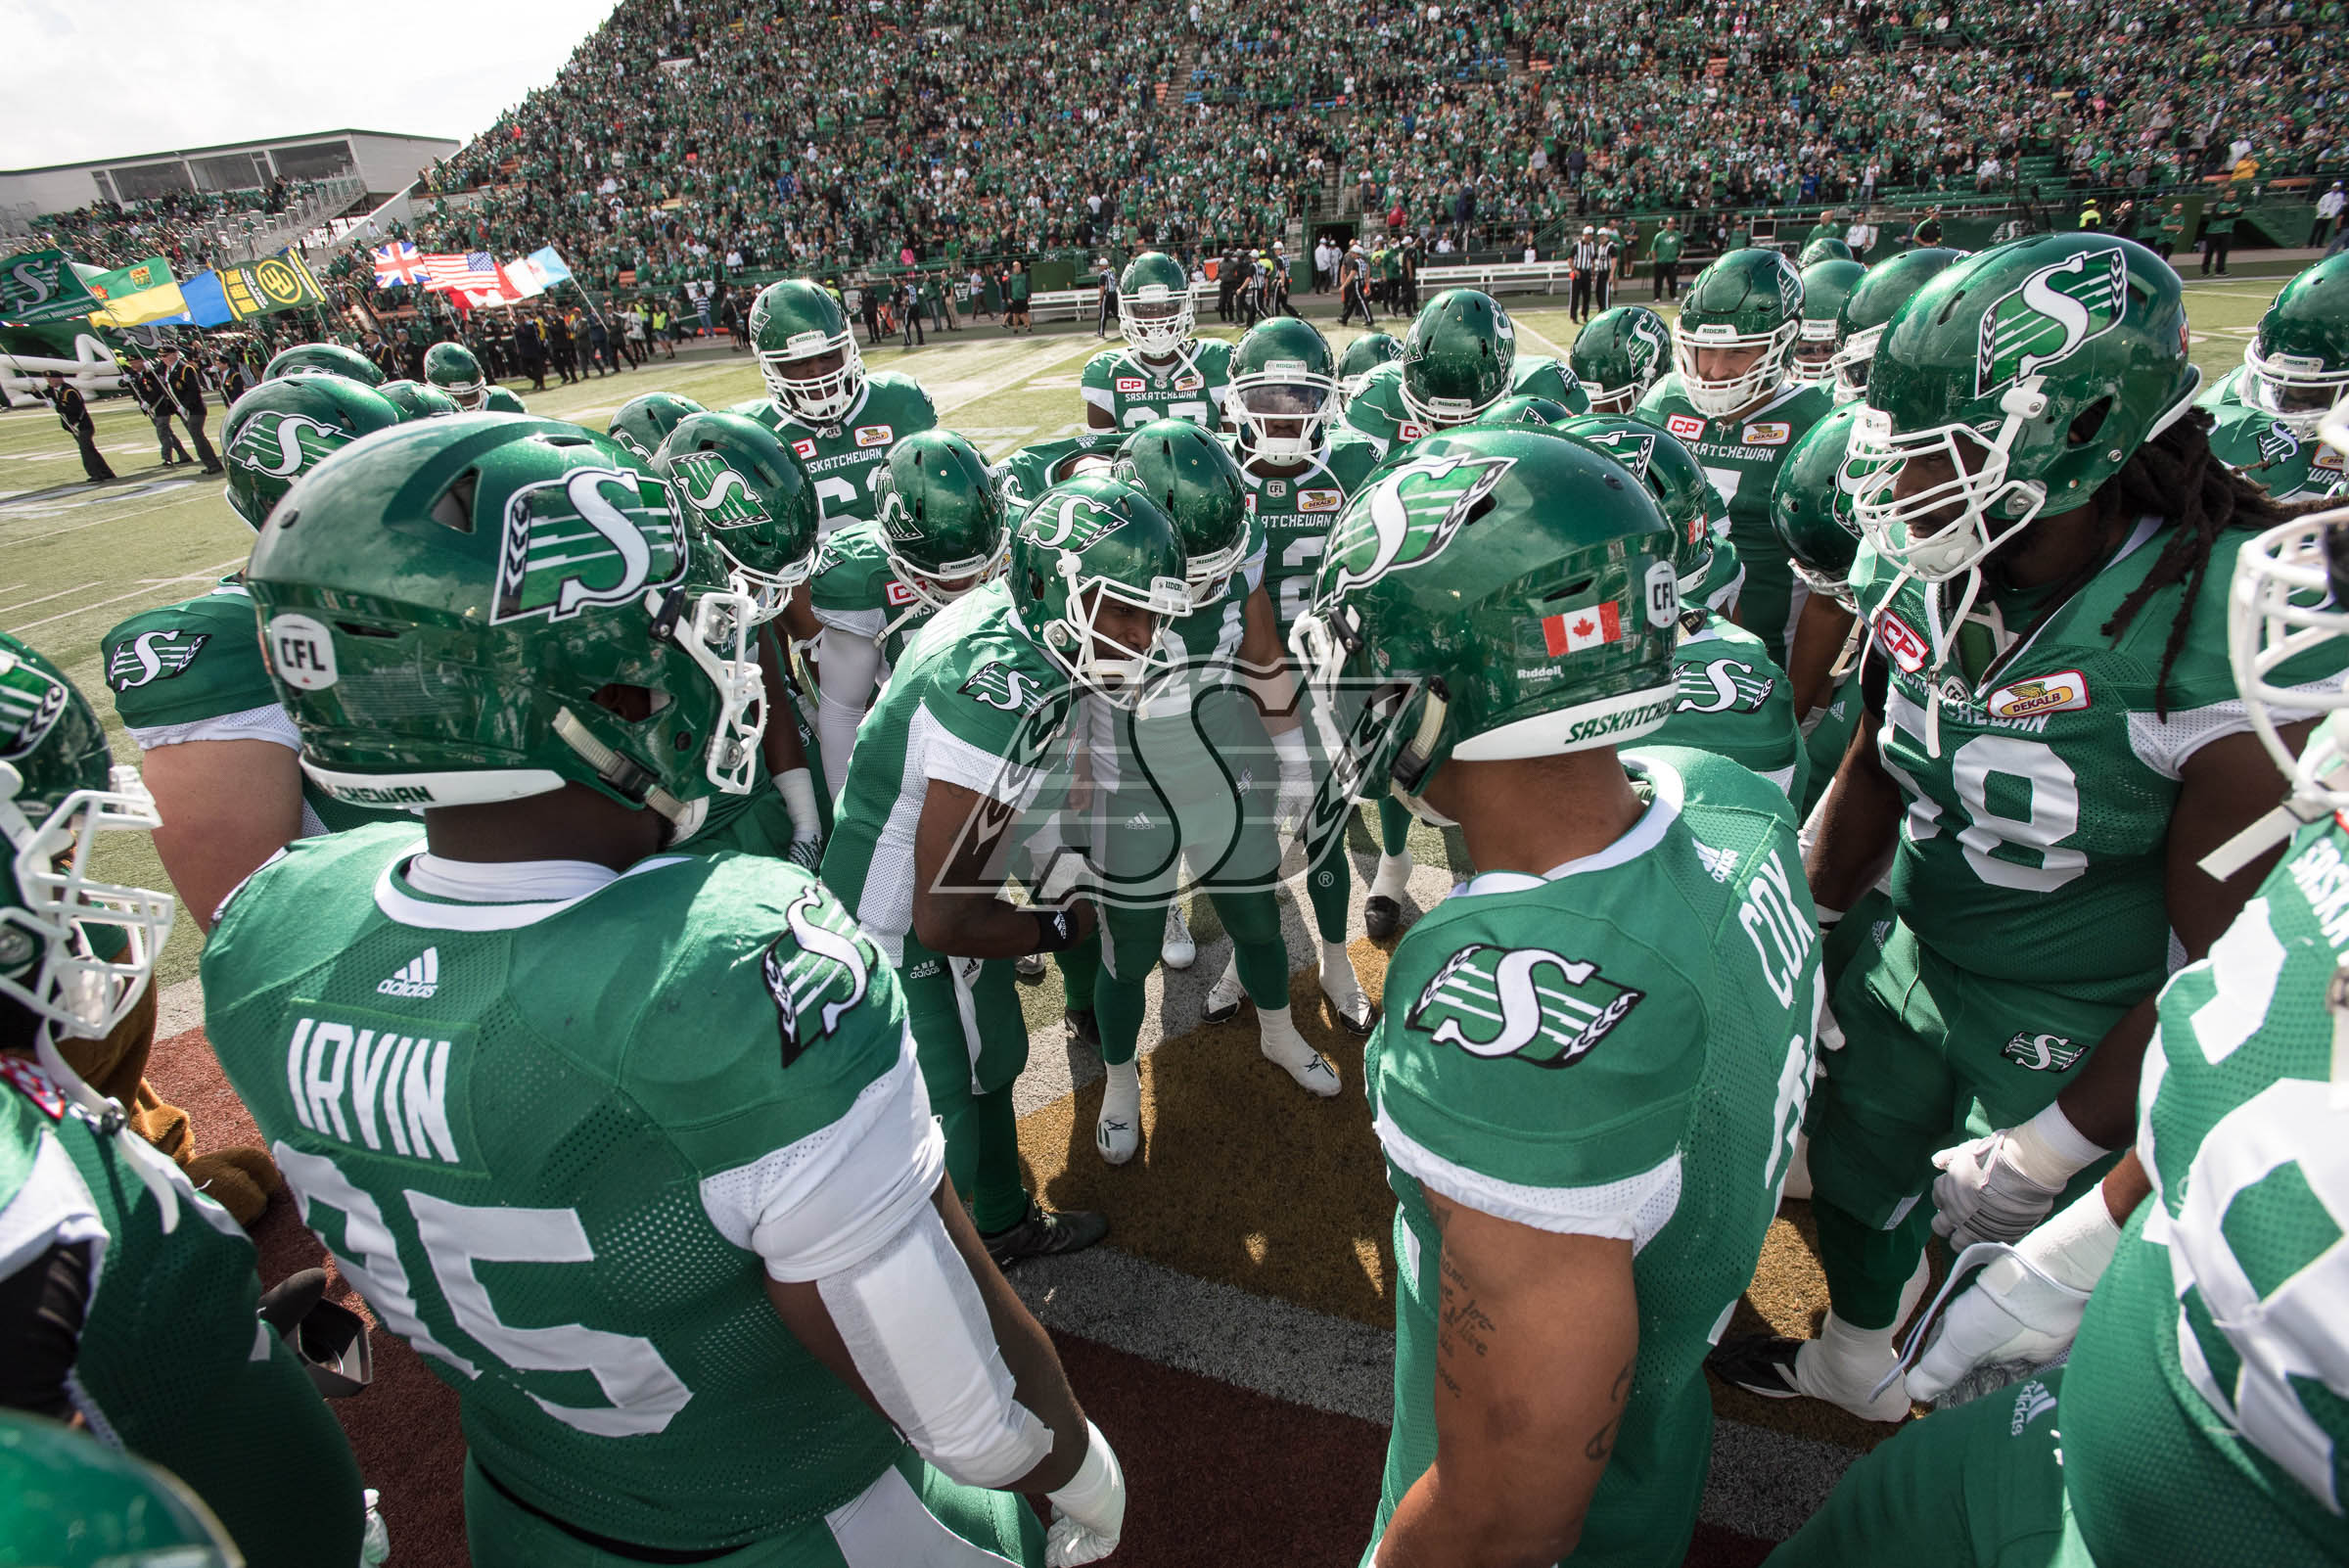 as the Saskatchewan Roughriders take on the Edmonton Eskimos in Regina, SK, September 18, 2016 Photo Electric Umbrella/Liam Richards